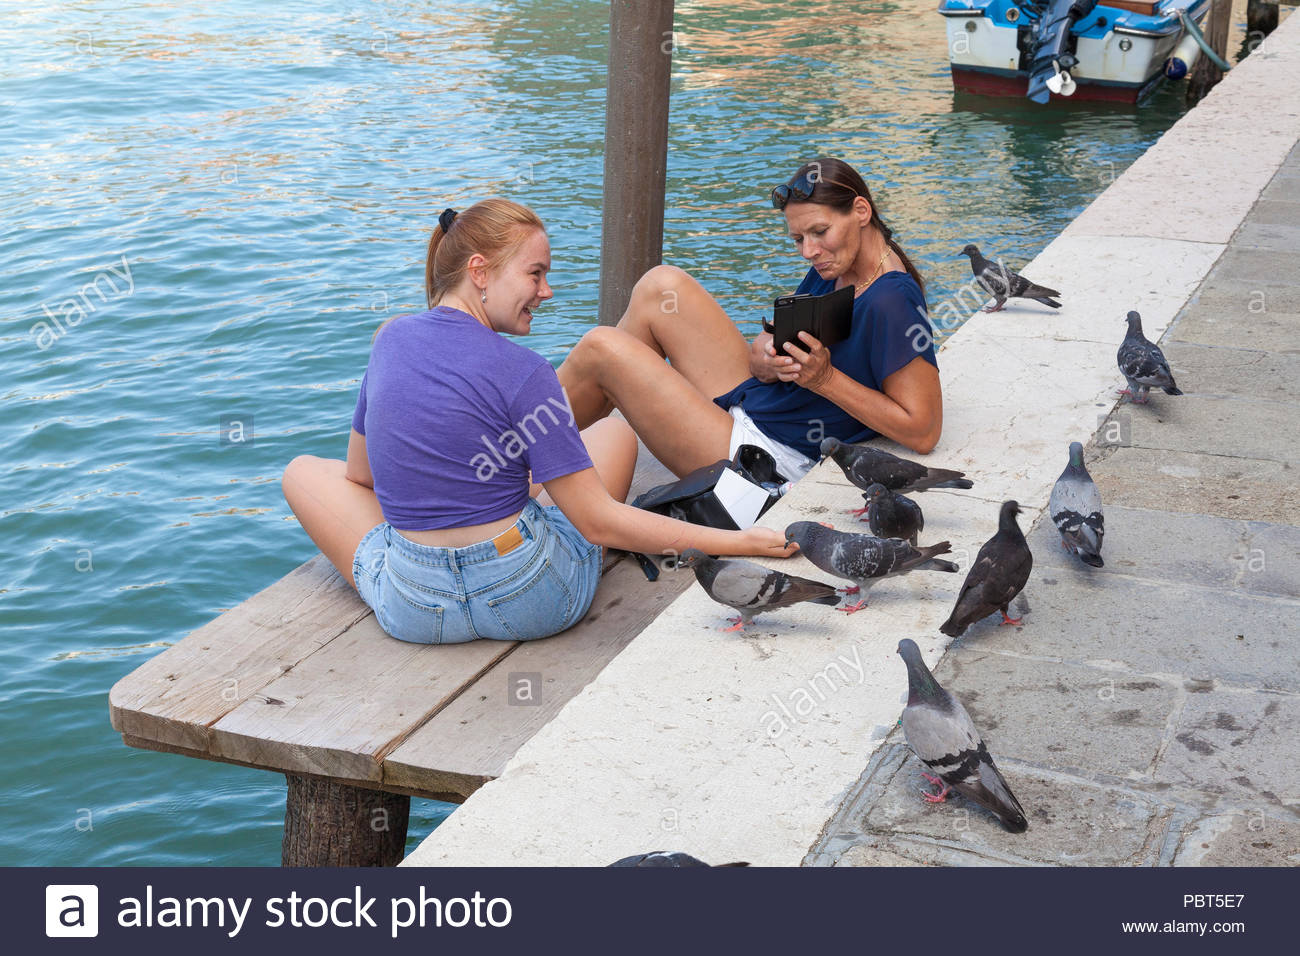 Two happy ladies relaxing feeding pigeons by hand on  a canal, Murano, Venice, Italy sitting on a wooden deck in the shade to escape the heat wave. - Stock Image